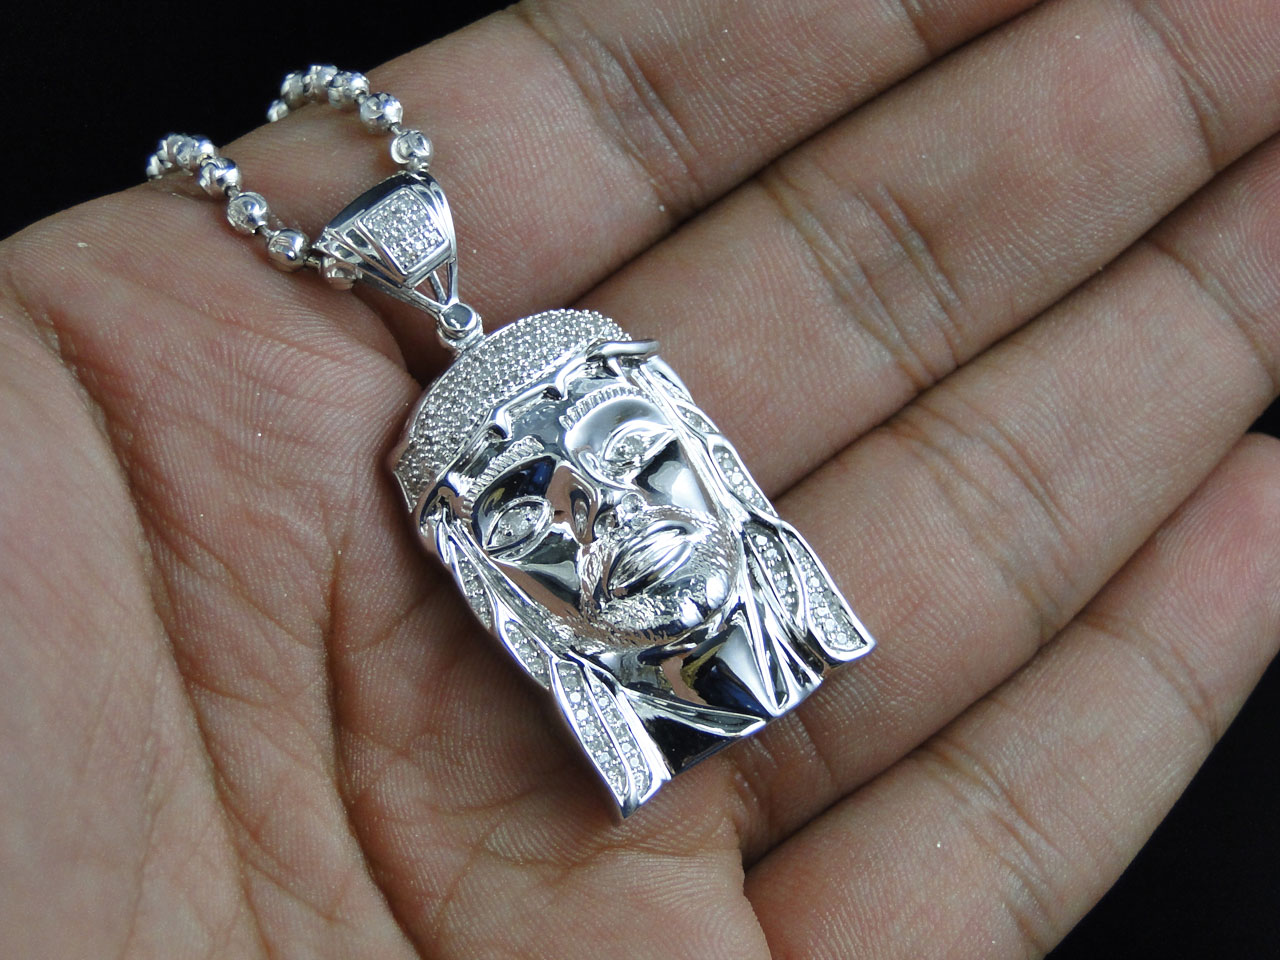 Real Diamond Jesus Face Piece Pendant Charm in Sterling Silver With Beaded Chain